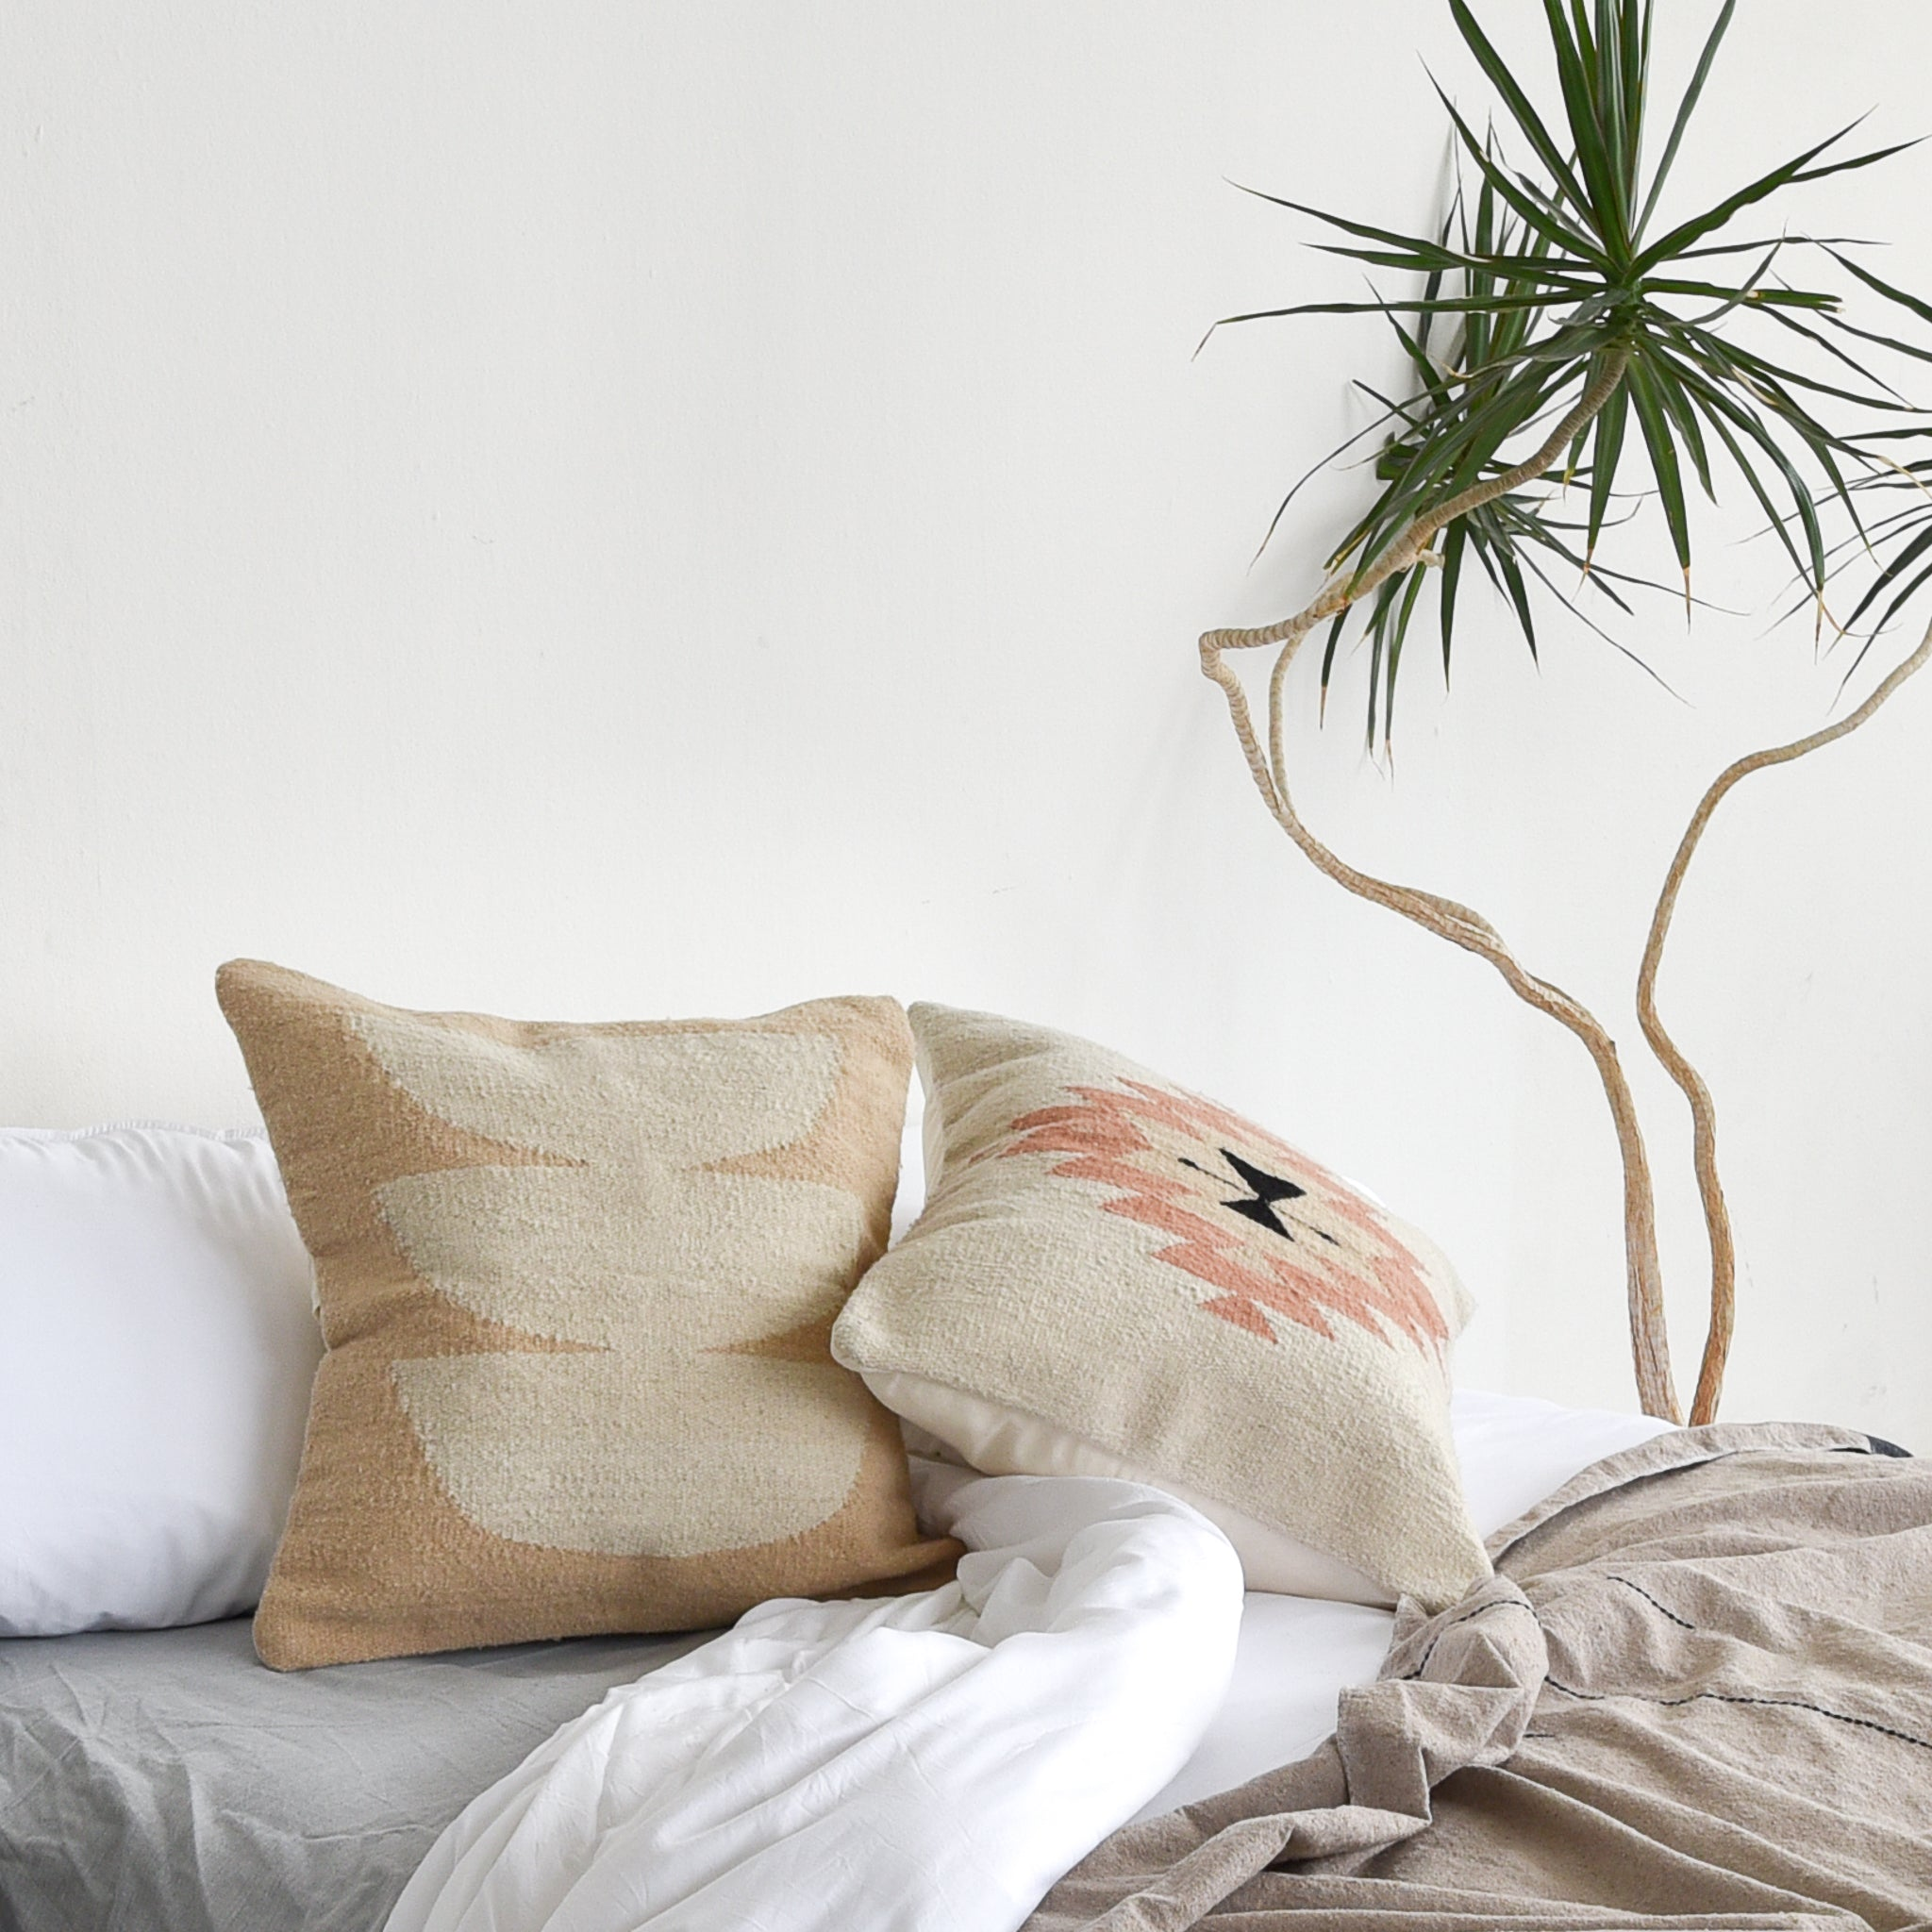 A set of wool Oaxaca throw pillows on a cozy bed with a yucca plant alongside.